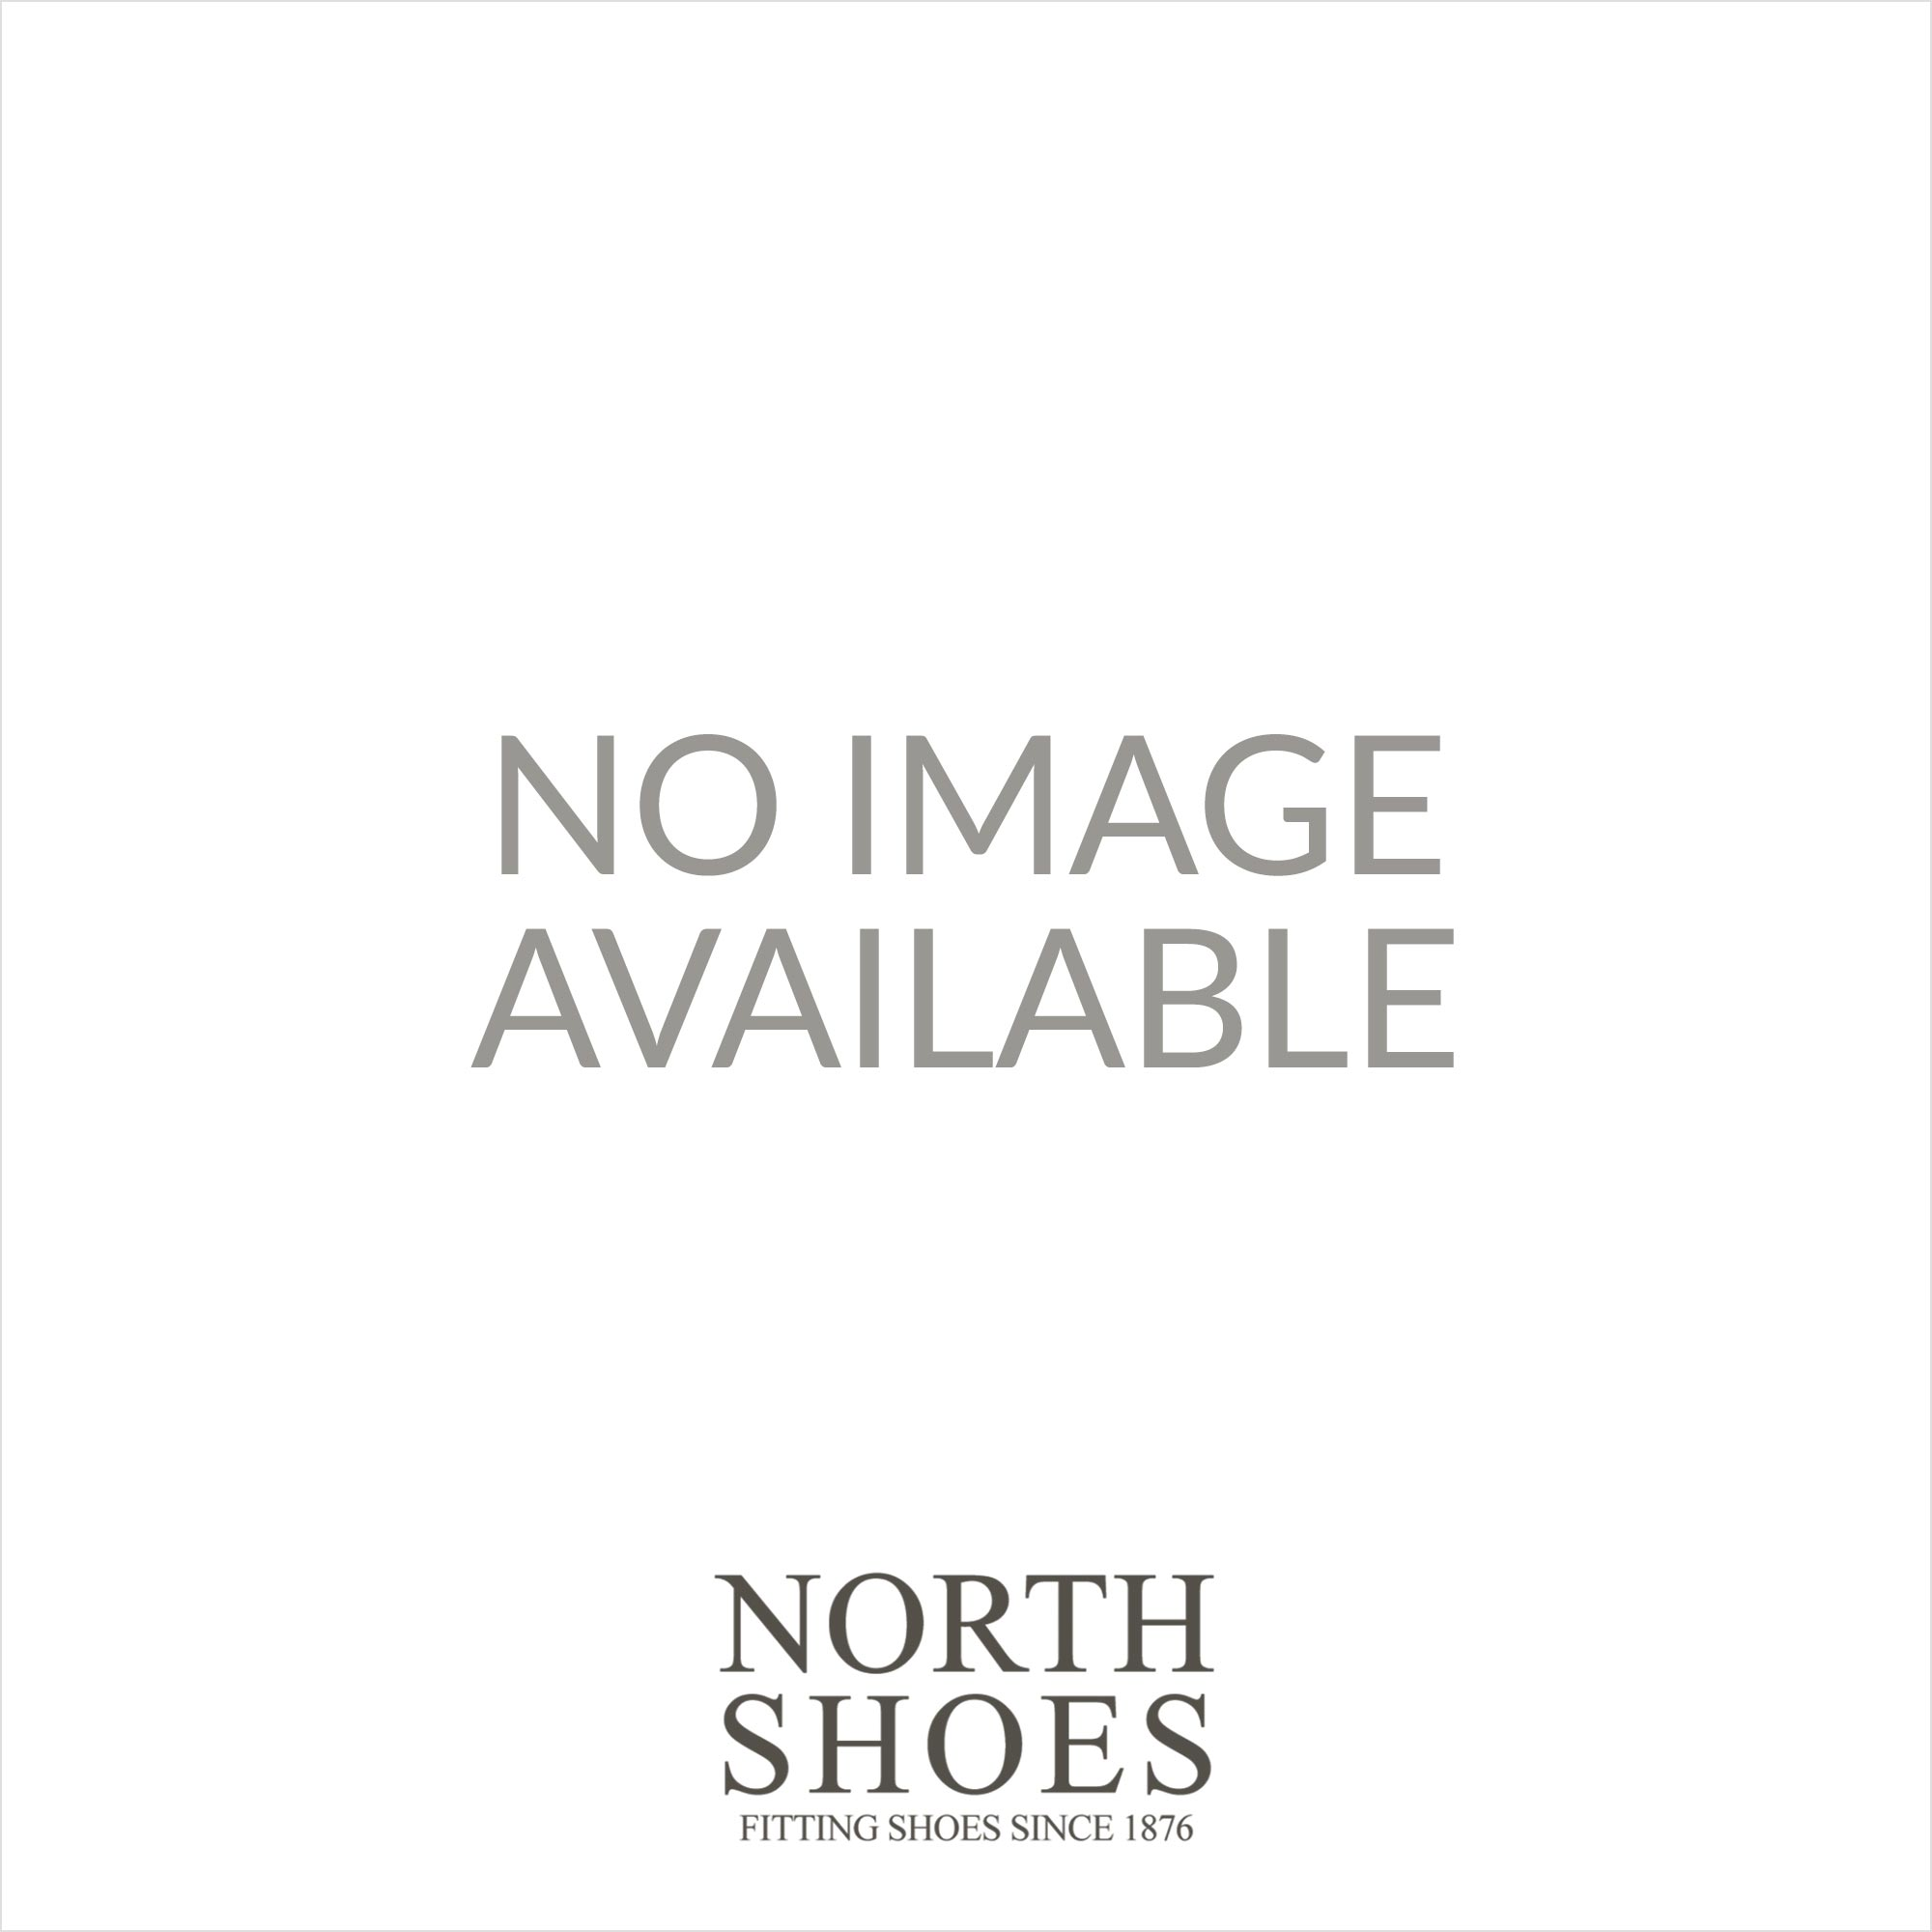 9efe2616d6f5 Clarks Rusty Rizz Black Leather Womens Sling Back Wedge Heel Sandal - Clarks  from North Shoes UK